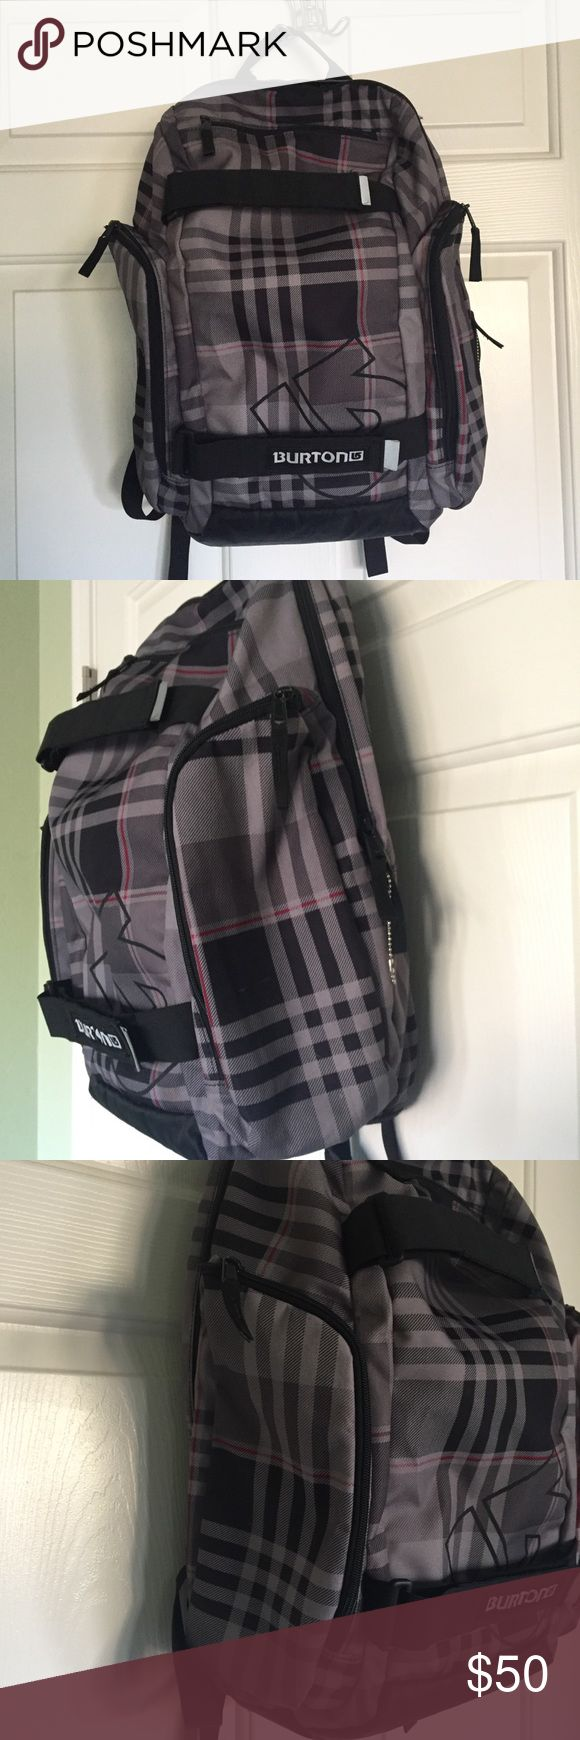 Burton Backpack Gray plaid. Front band. Insulated side pocket. Top pocket. Bag is roughly 20x15. Burton Bags Backpacks